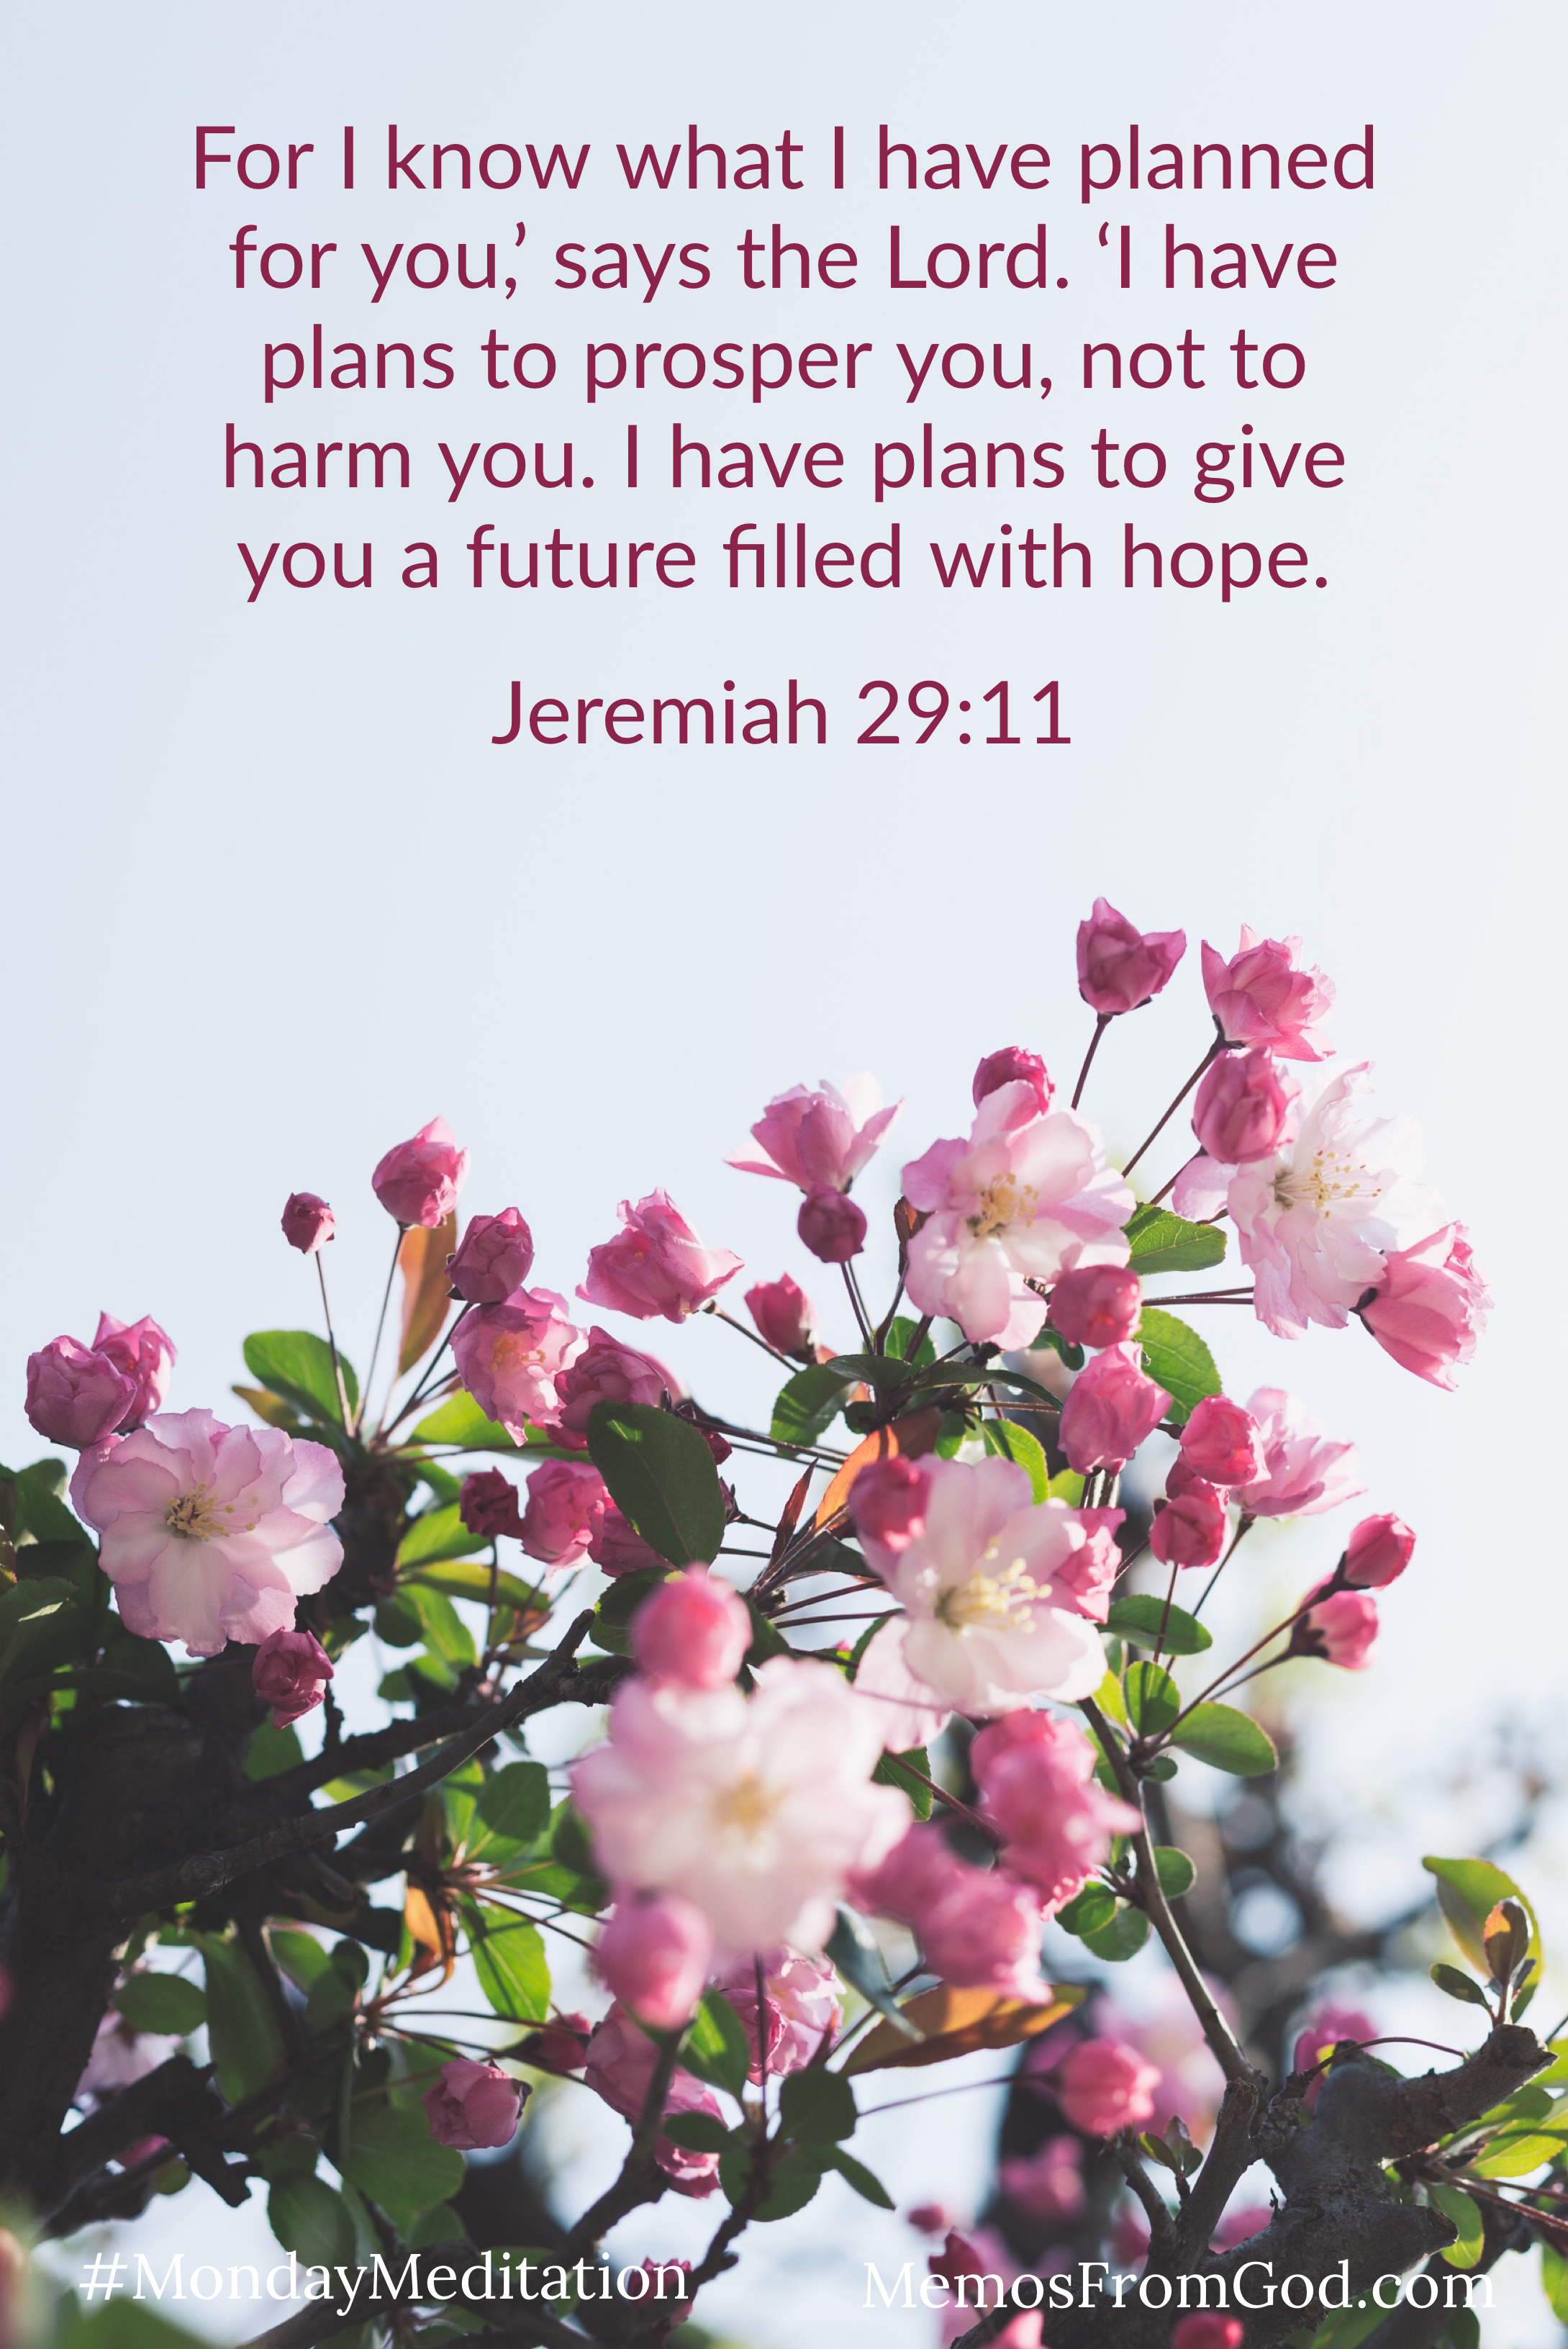 Branches filled with pink blossoms against a grey sky. Caption: For I know what I have planned for you,' says the Lord. 'I have plans to prosper you, not to harm you. I have plans to give you a future filled with hope. Jeremiah 29:11